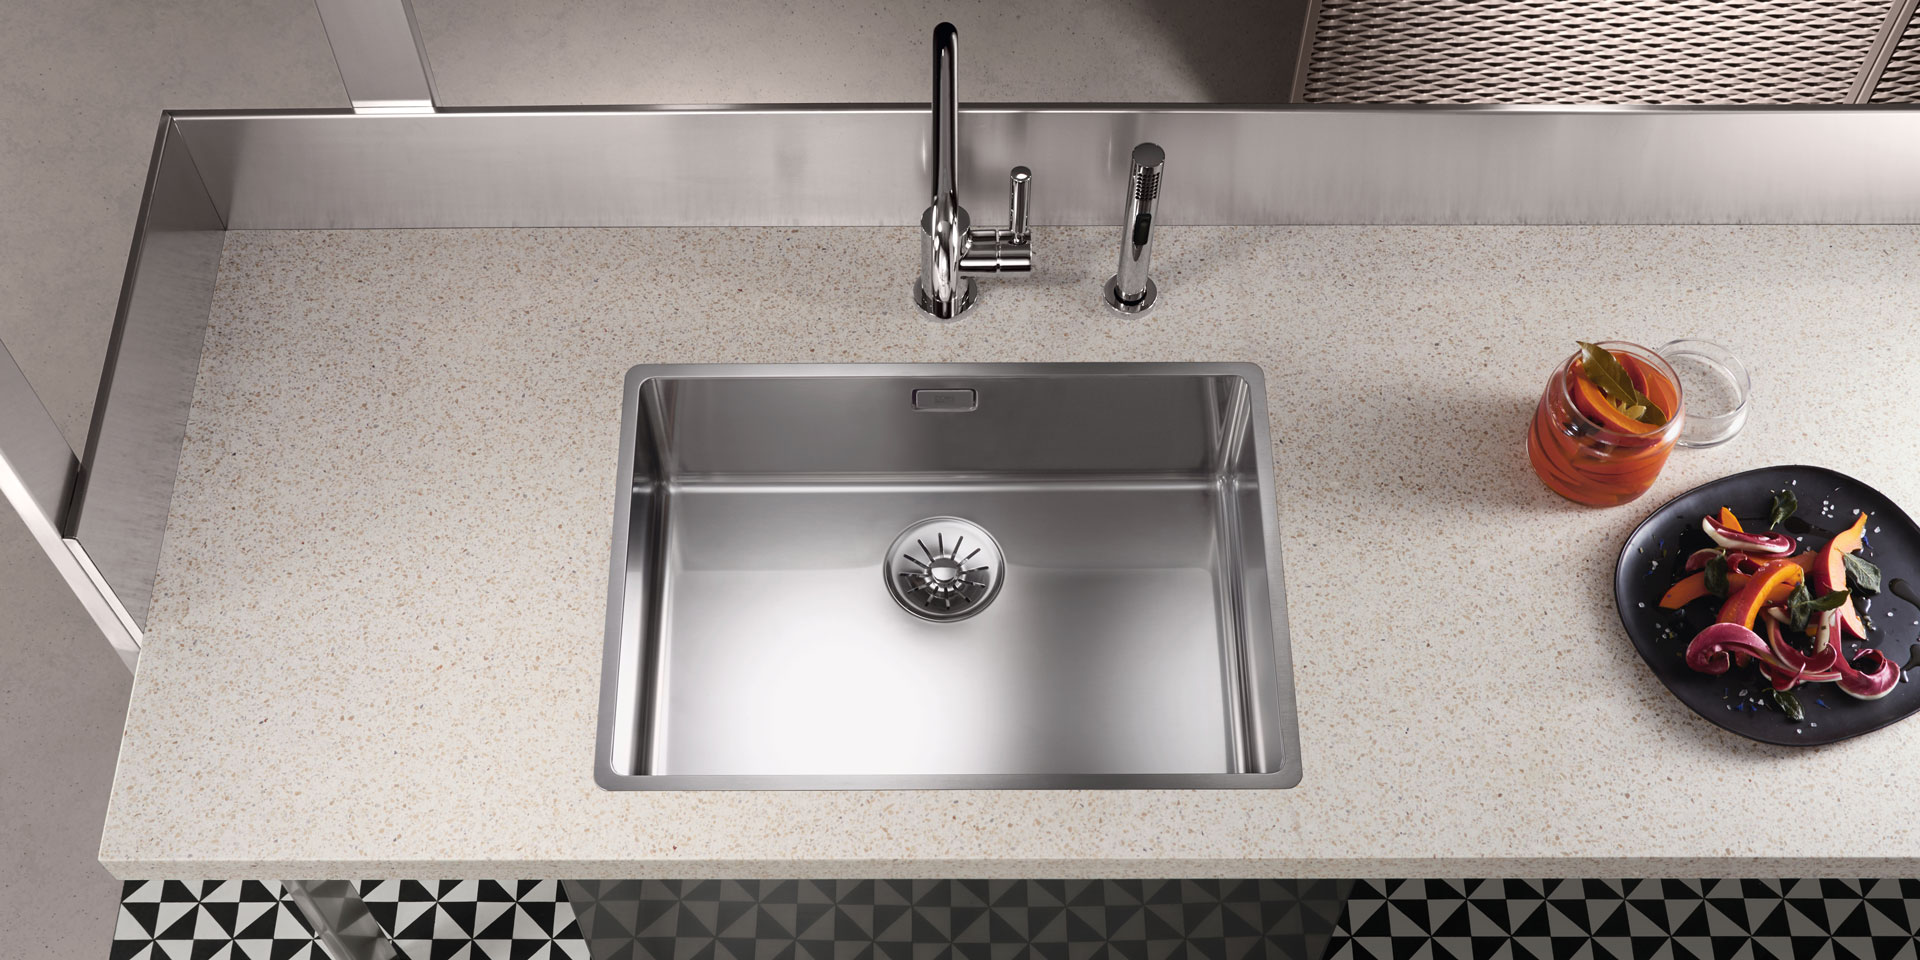 Polished stainless steel kitchen sinks